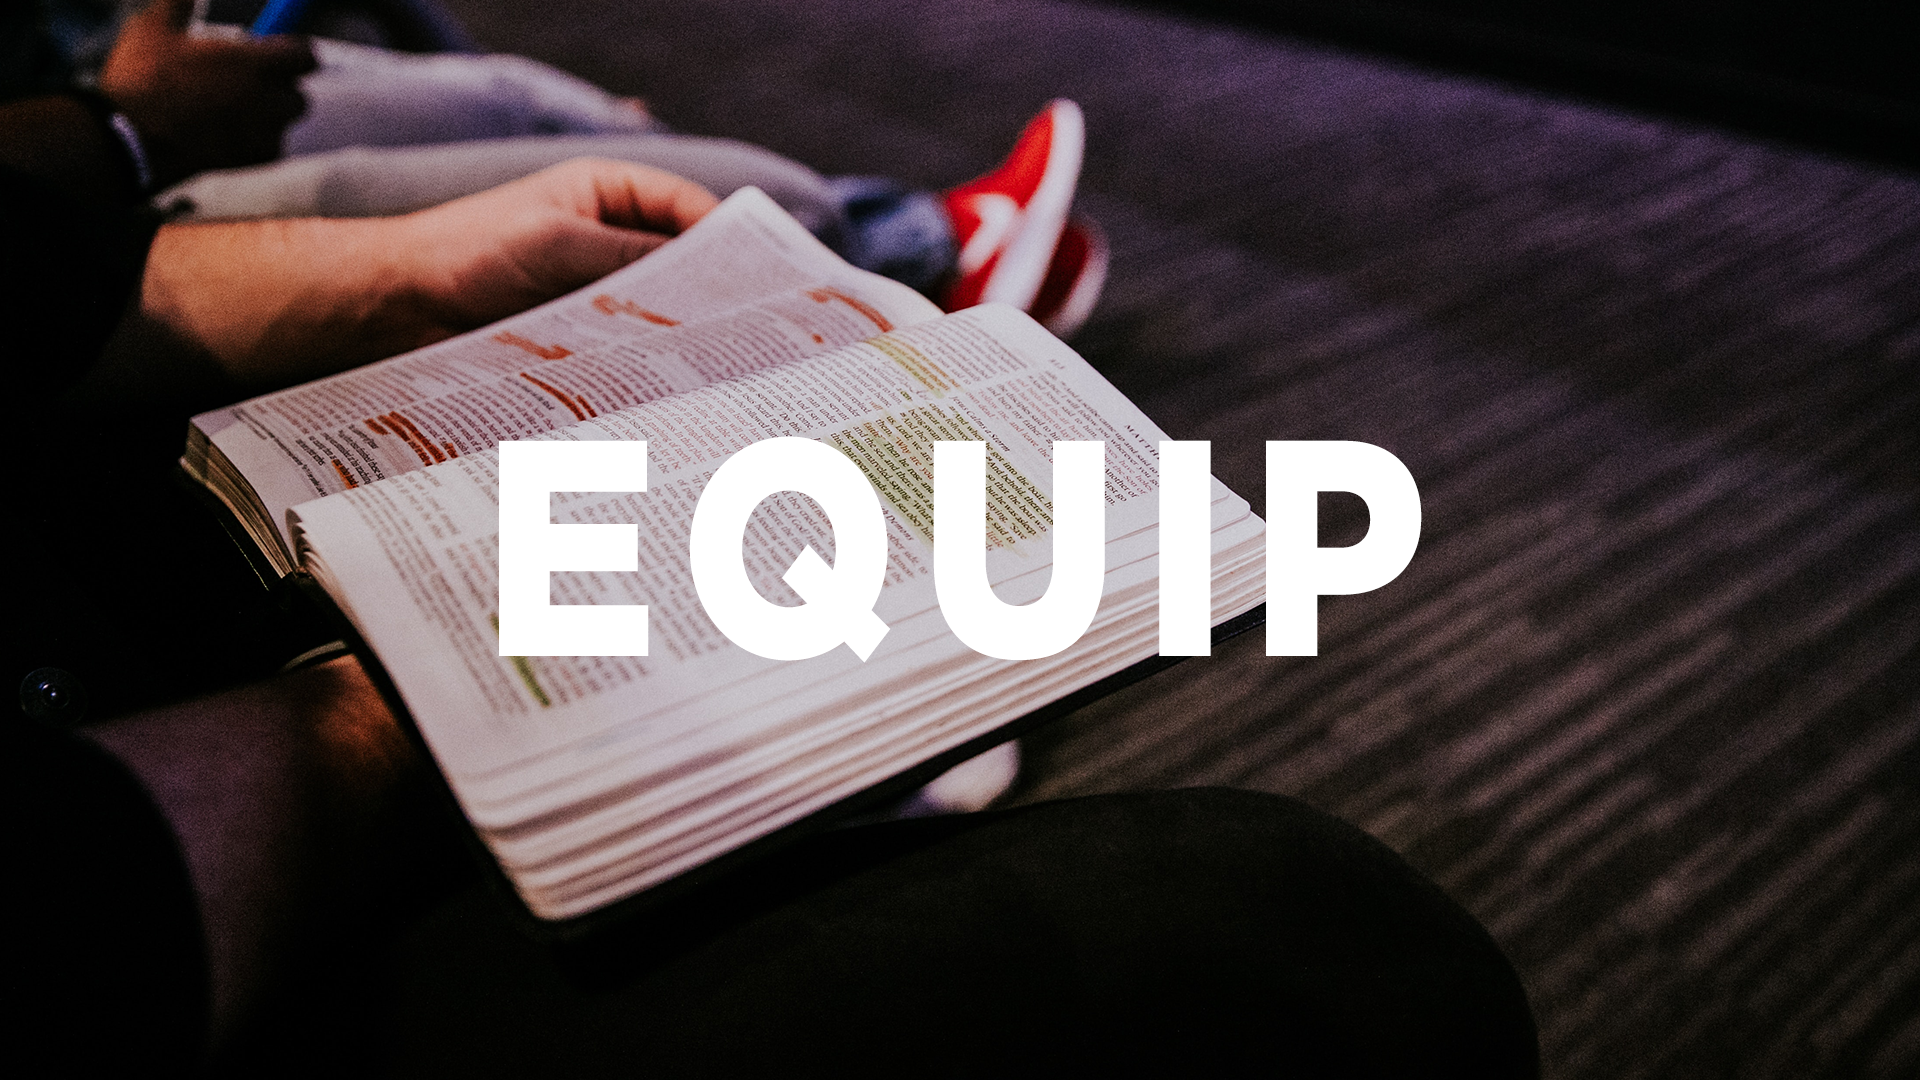 - Equip yourself through our Life Groups and personal study